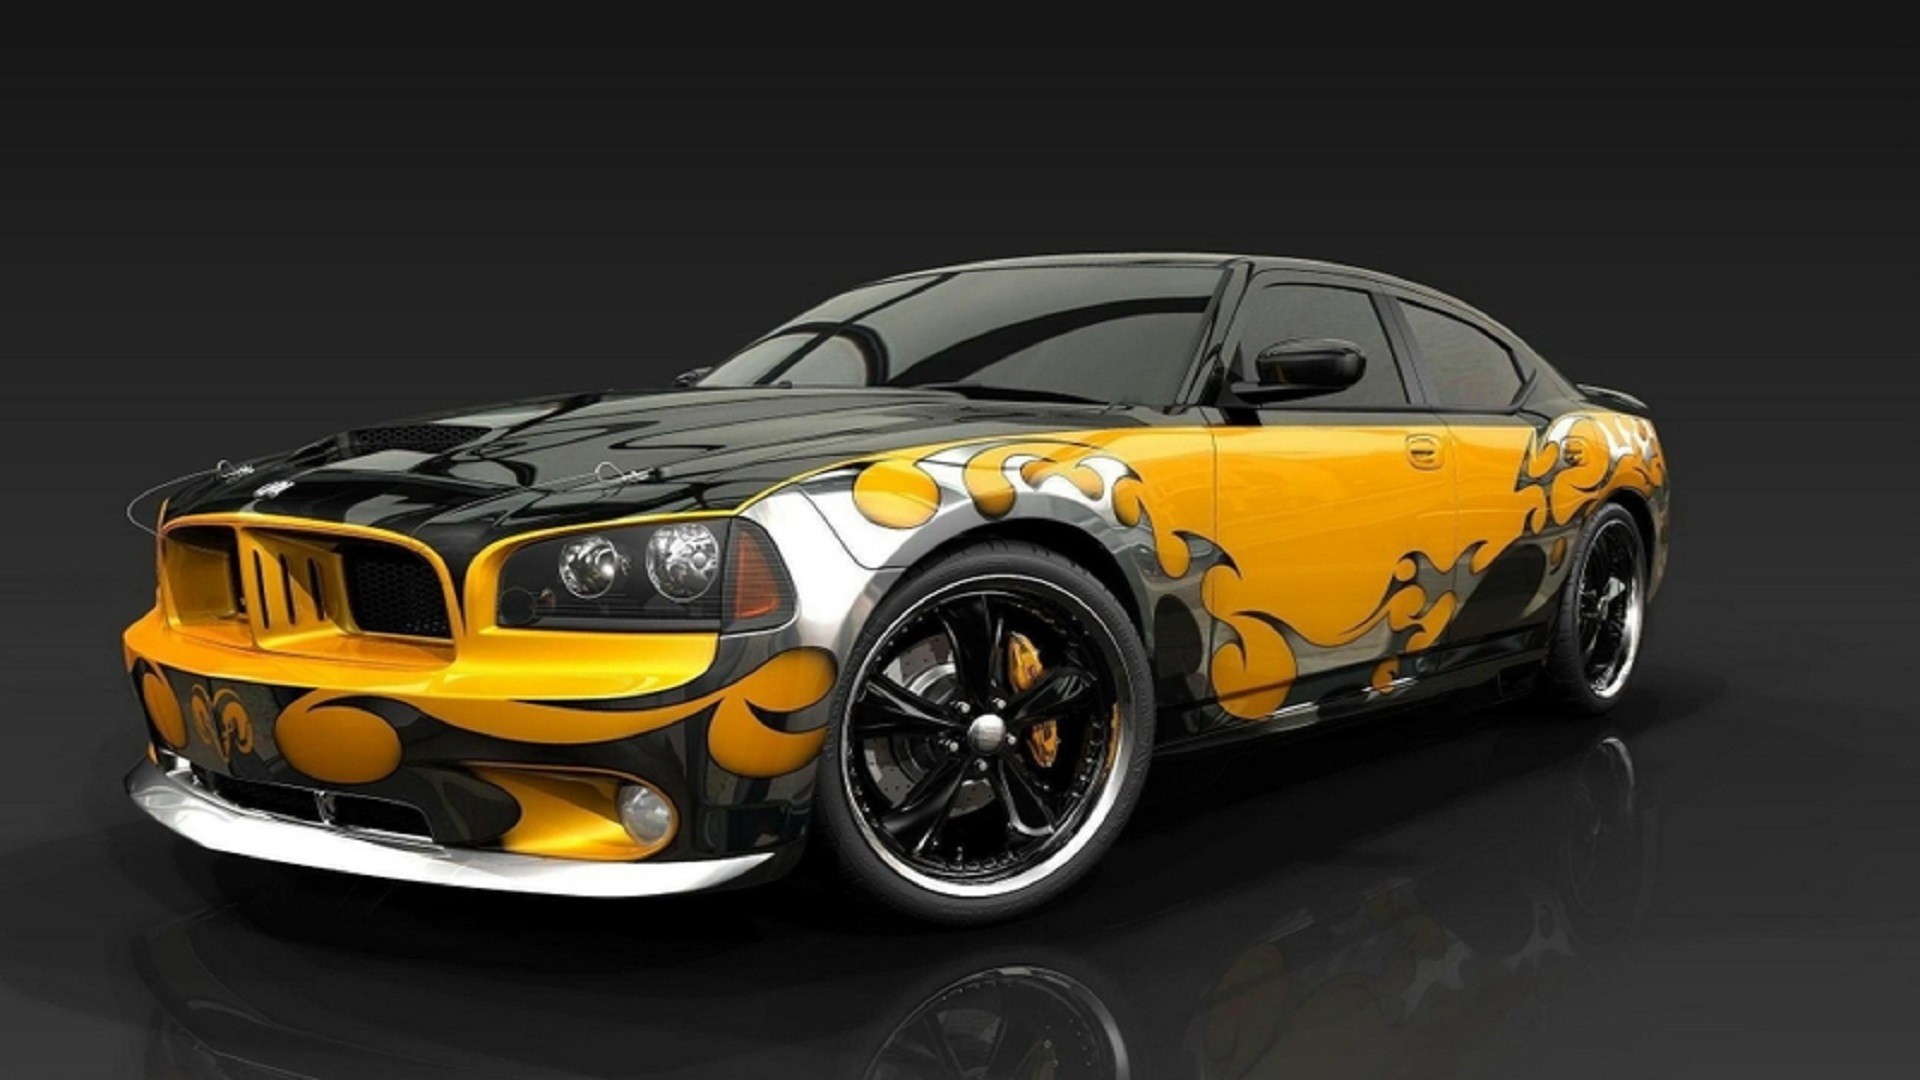 Muscle Car Wallpapers HD Free Download For Desktop Mobile